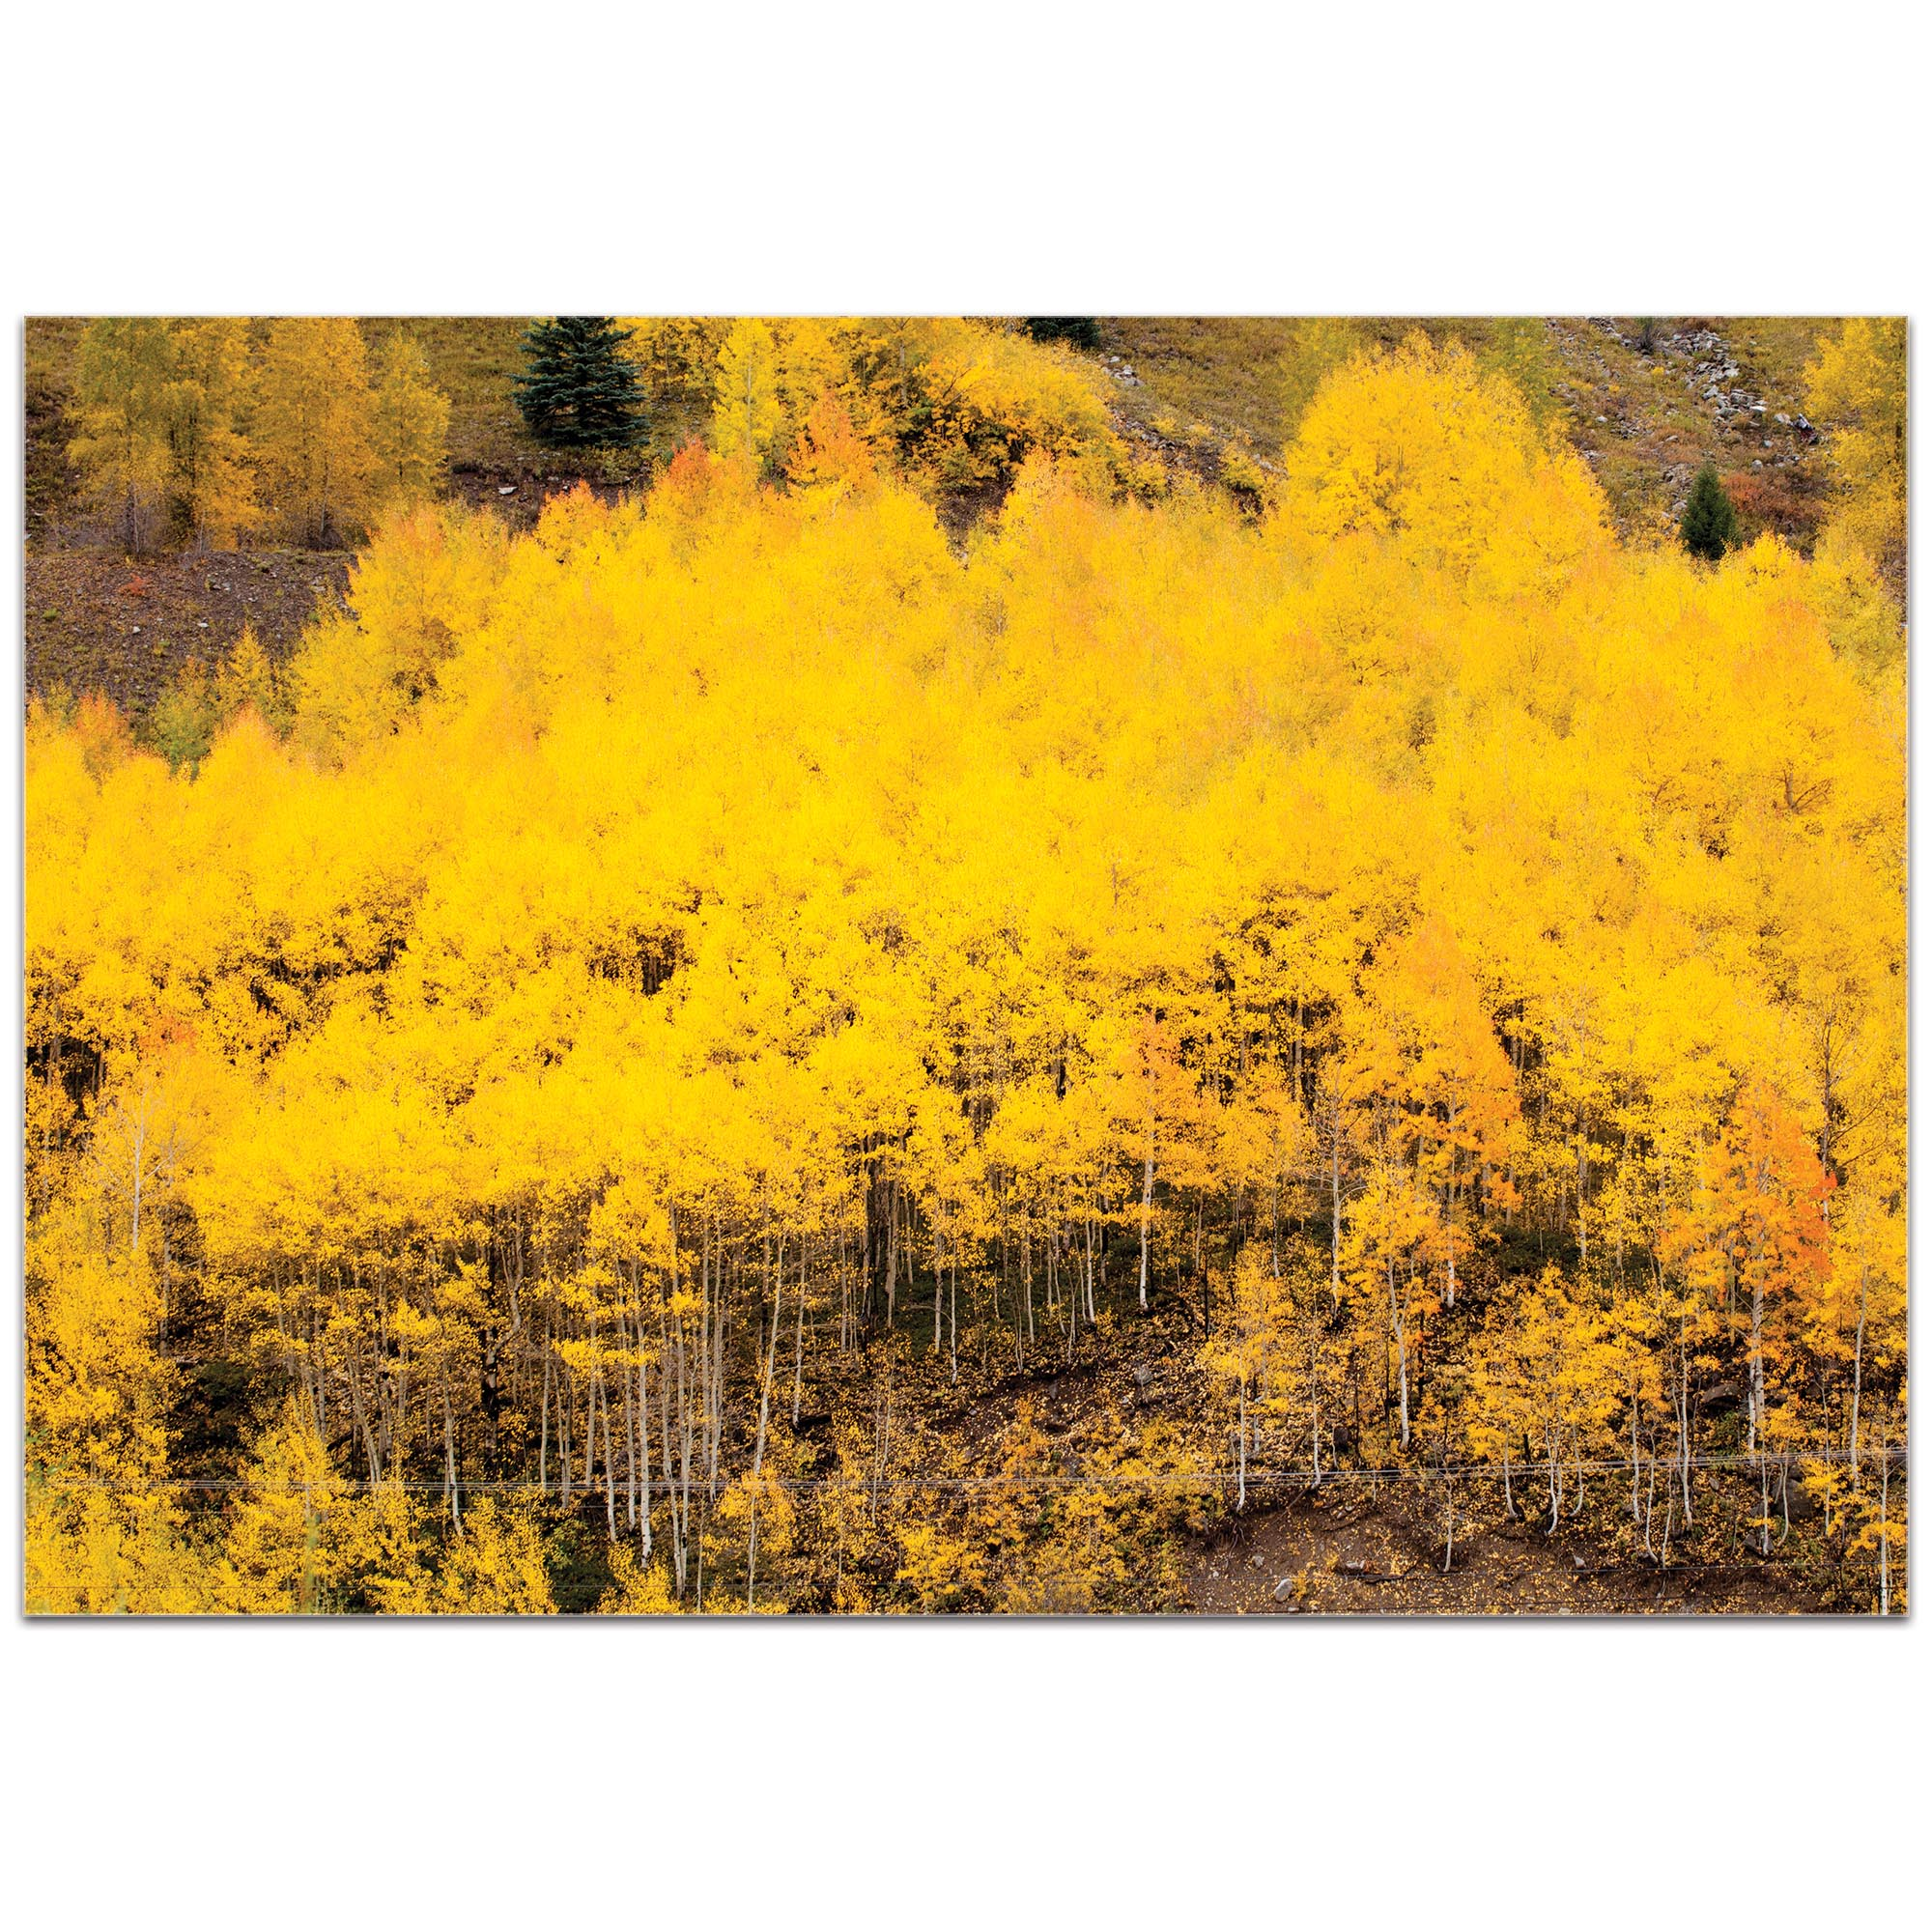 Landscape Photography 'Aspen Autumn' - Autumn Nature Art on Metal or Plexiglass - Image 2